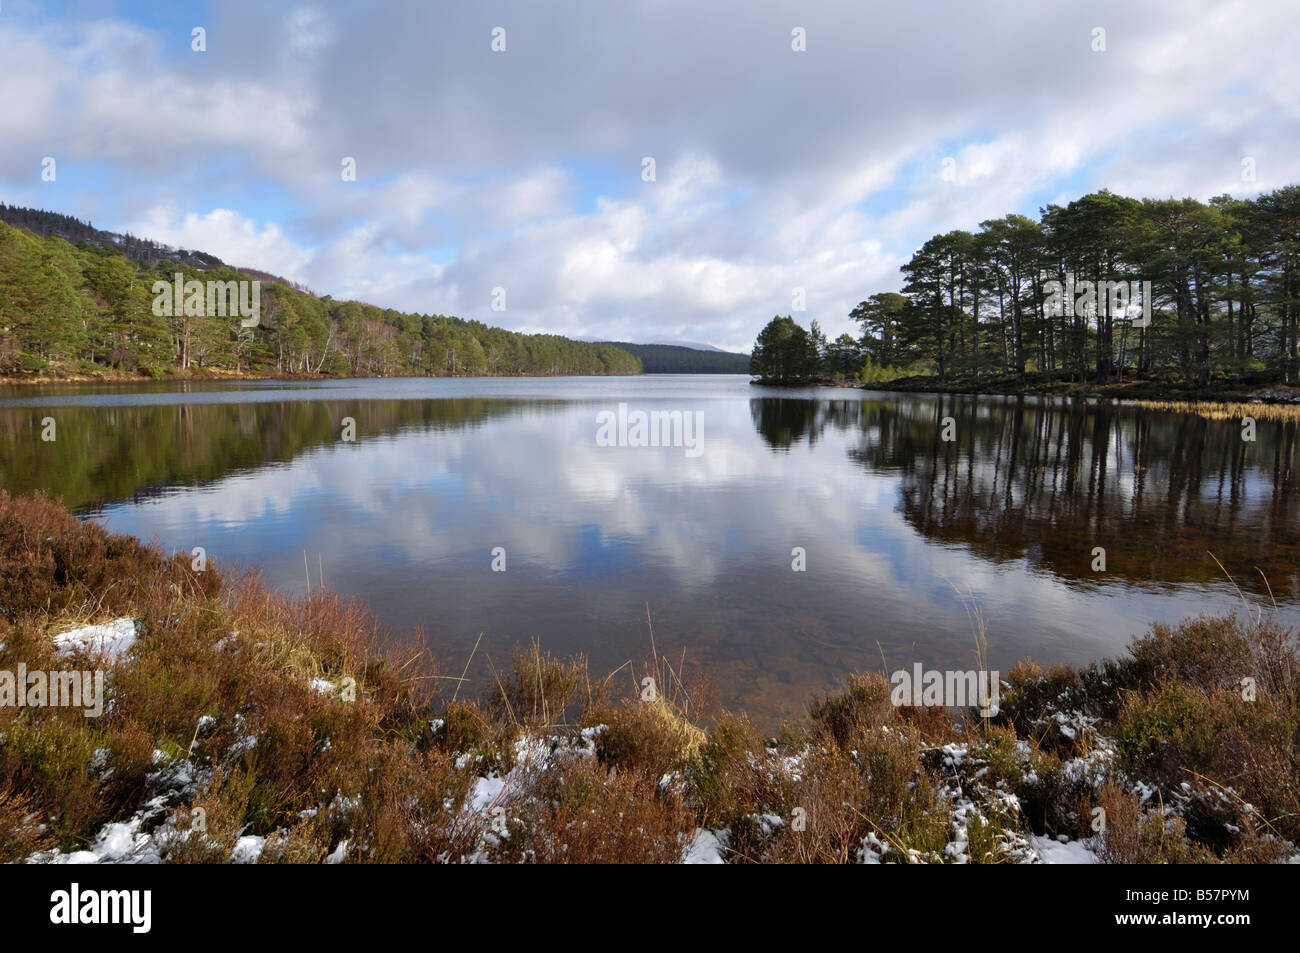 Loch an Eilein, near Aviemore, Cairngorms National Park, Highlands, Scotland, United Kingdom, Europe - Stock Image